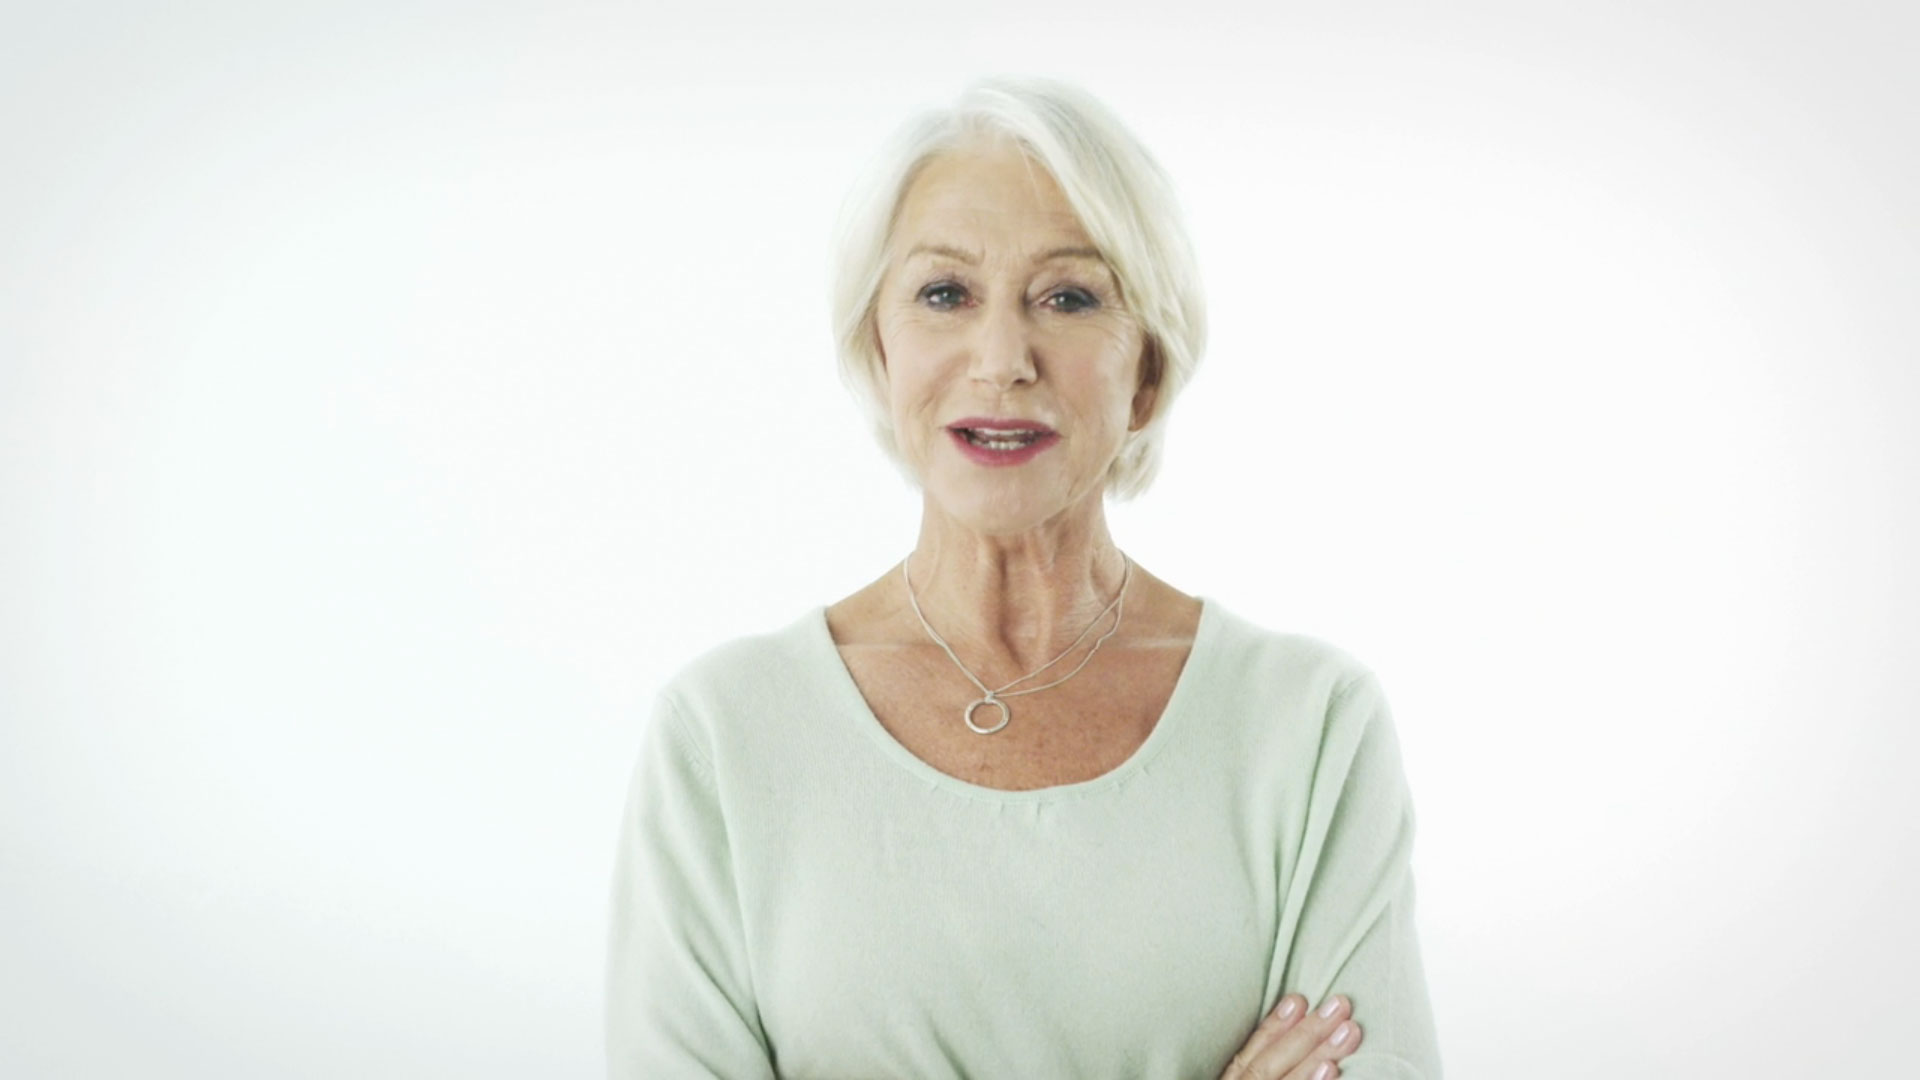 Helen Mirren on the Importance of Giving People the Time to Speak